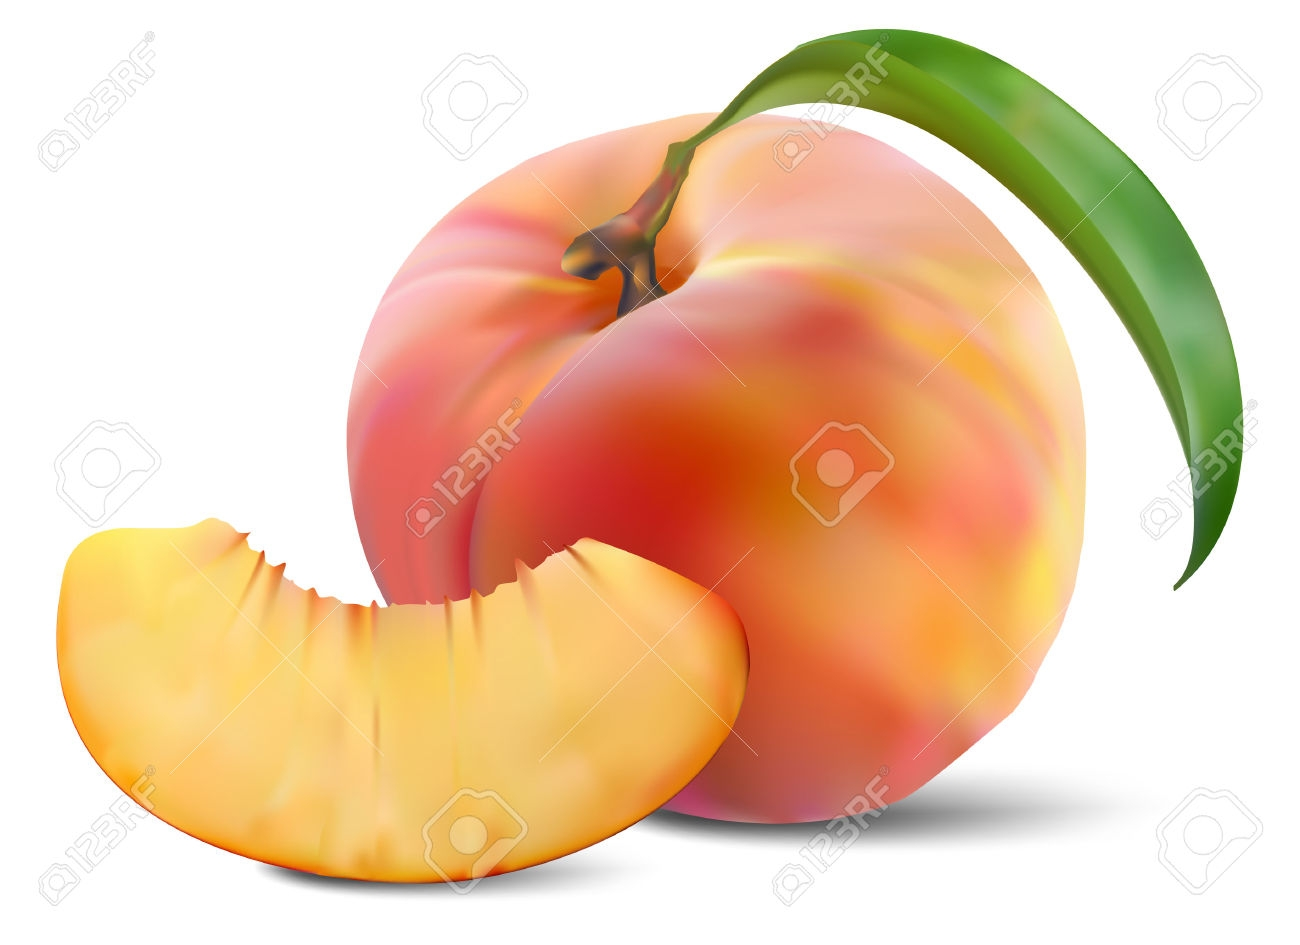 1300x945 Peach Clipart Peach Slice